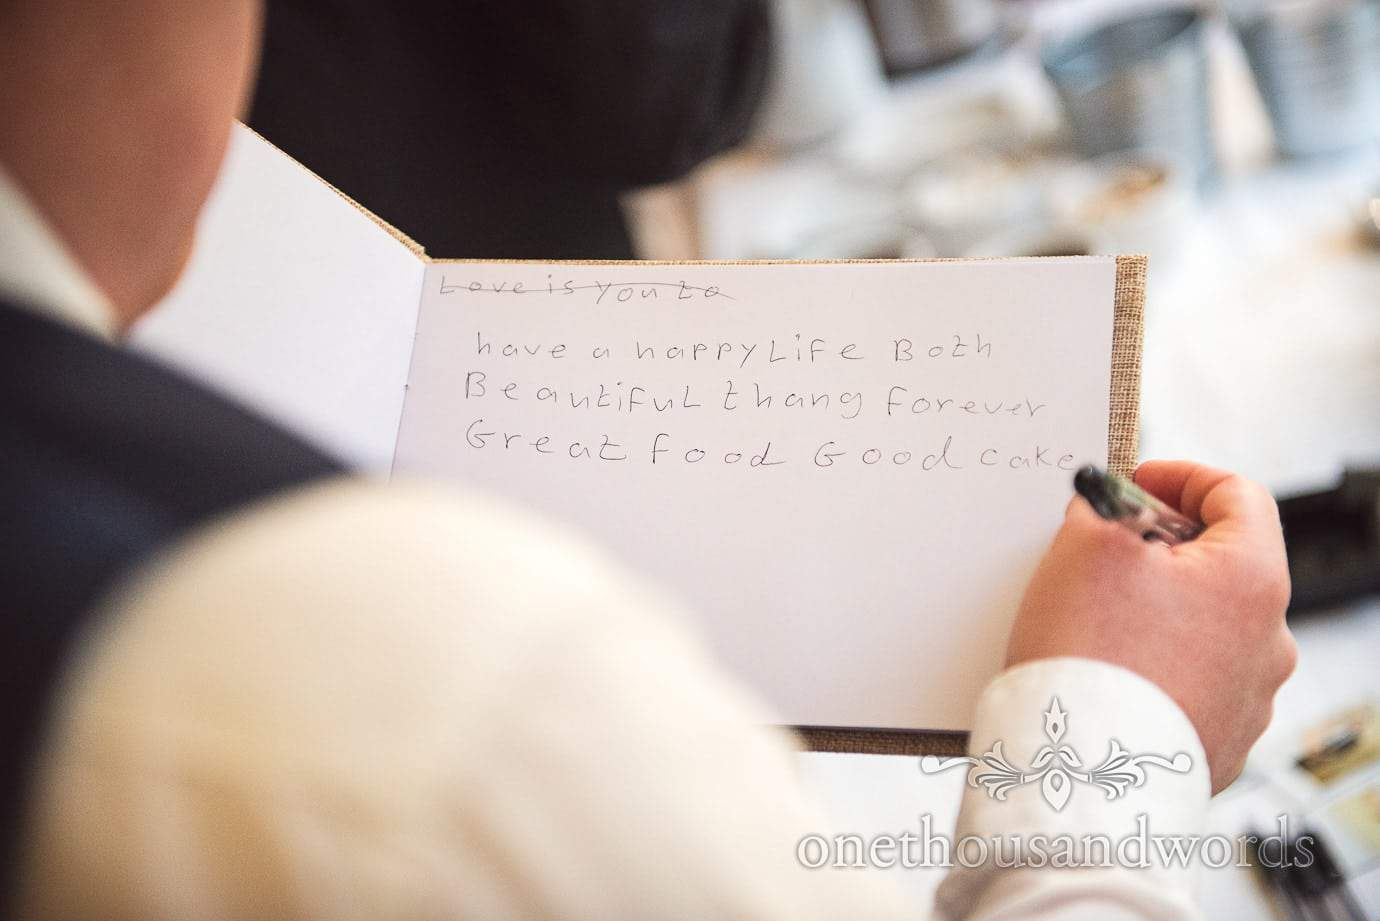 Beautiful wedding message in wedding guest book by bride's new brother